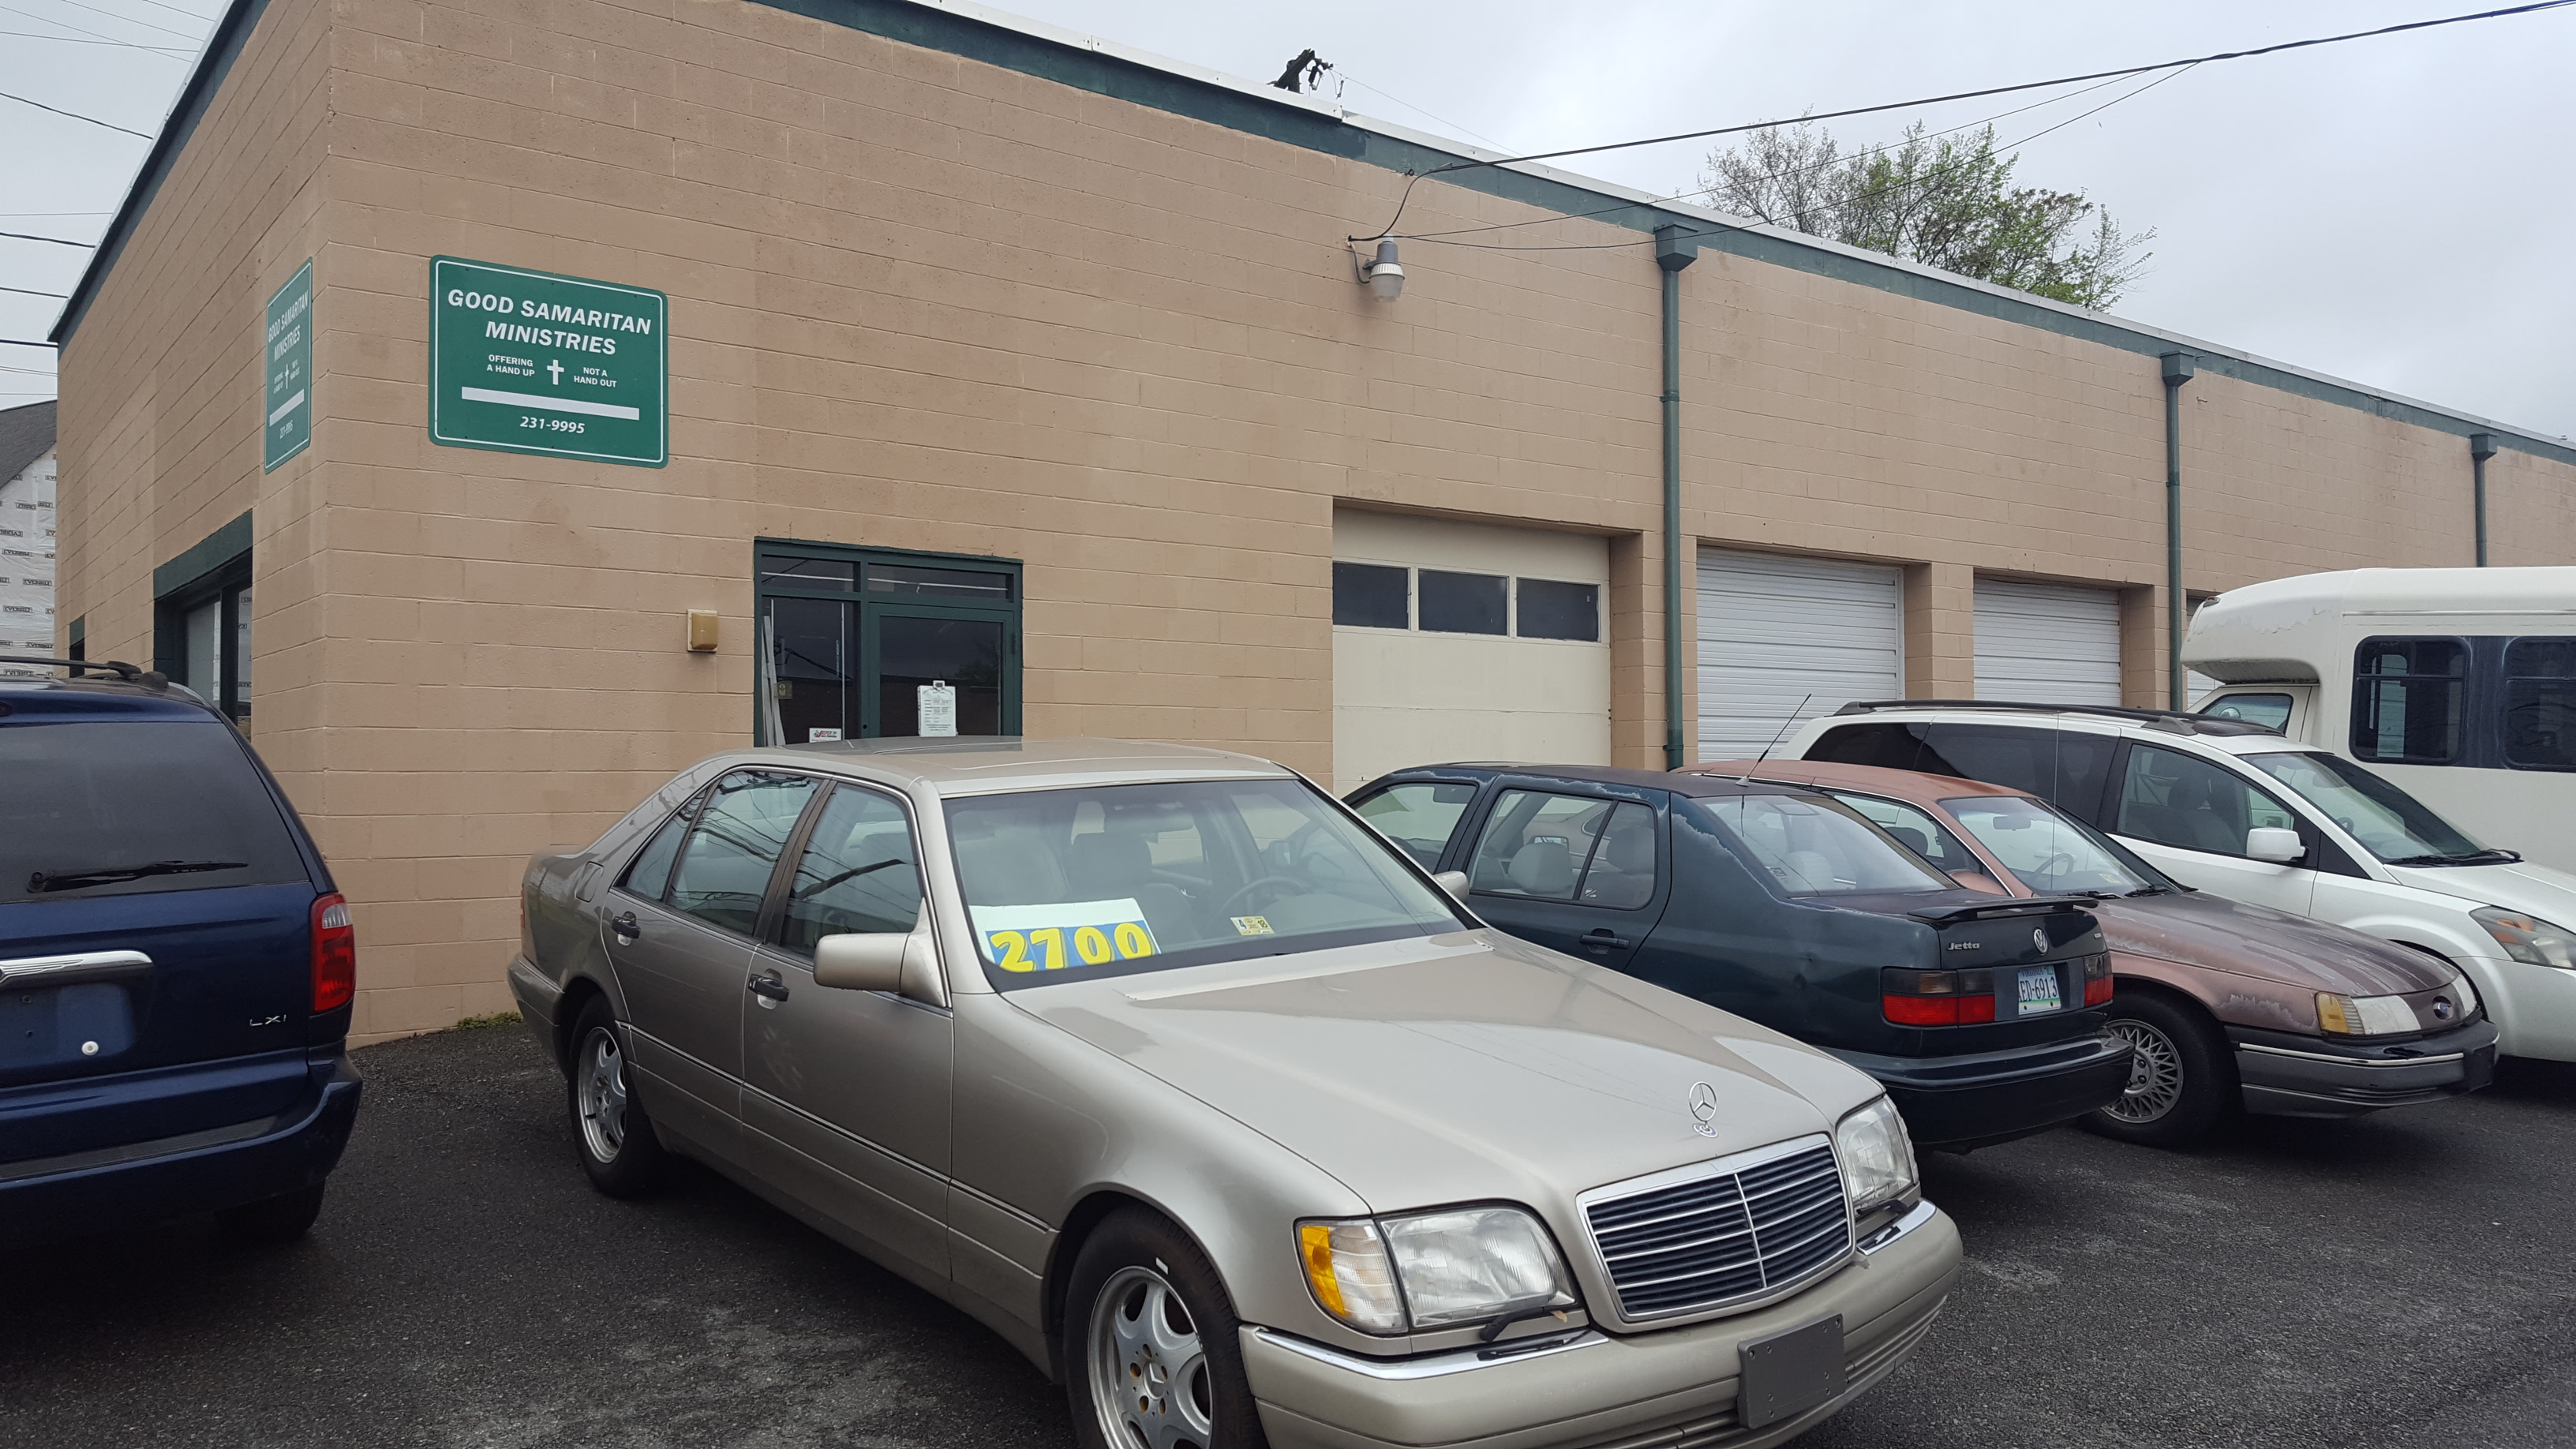 One Way Auto >> Good Sam Auto Sales Good Samaritan Ministries